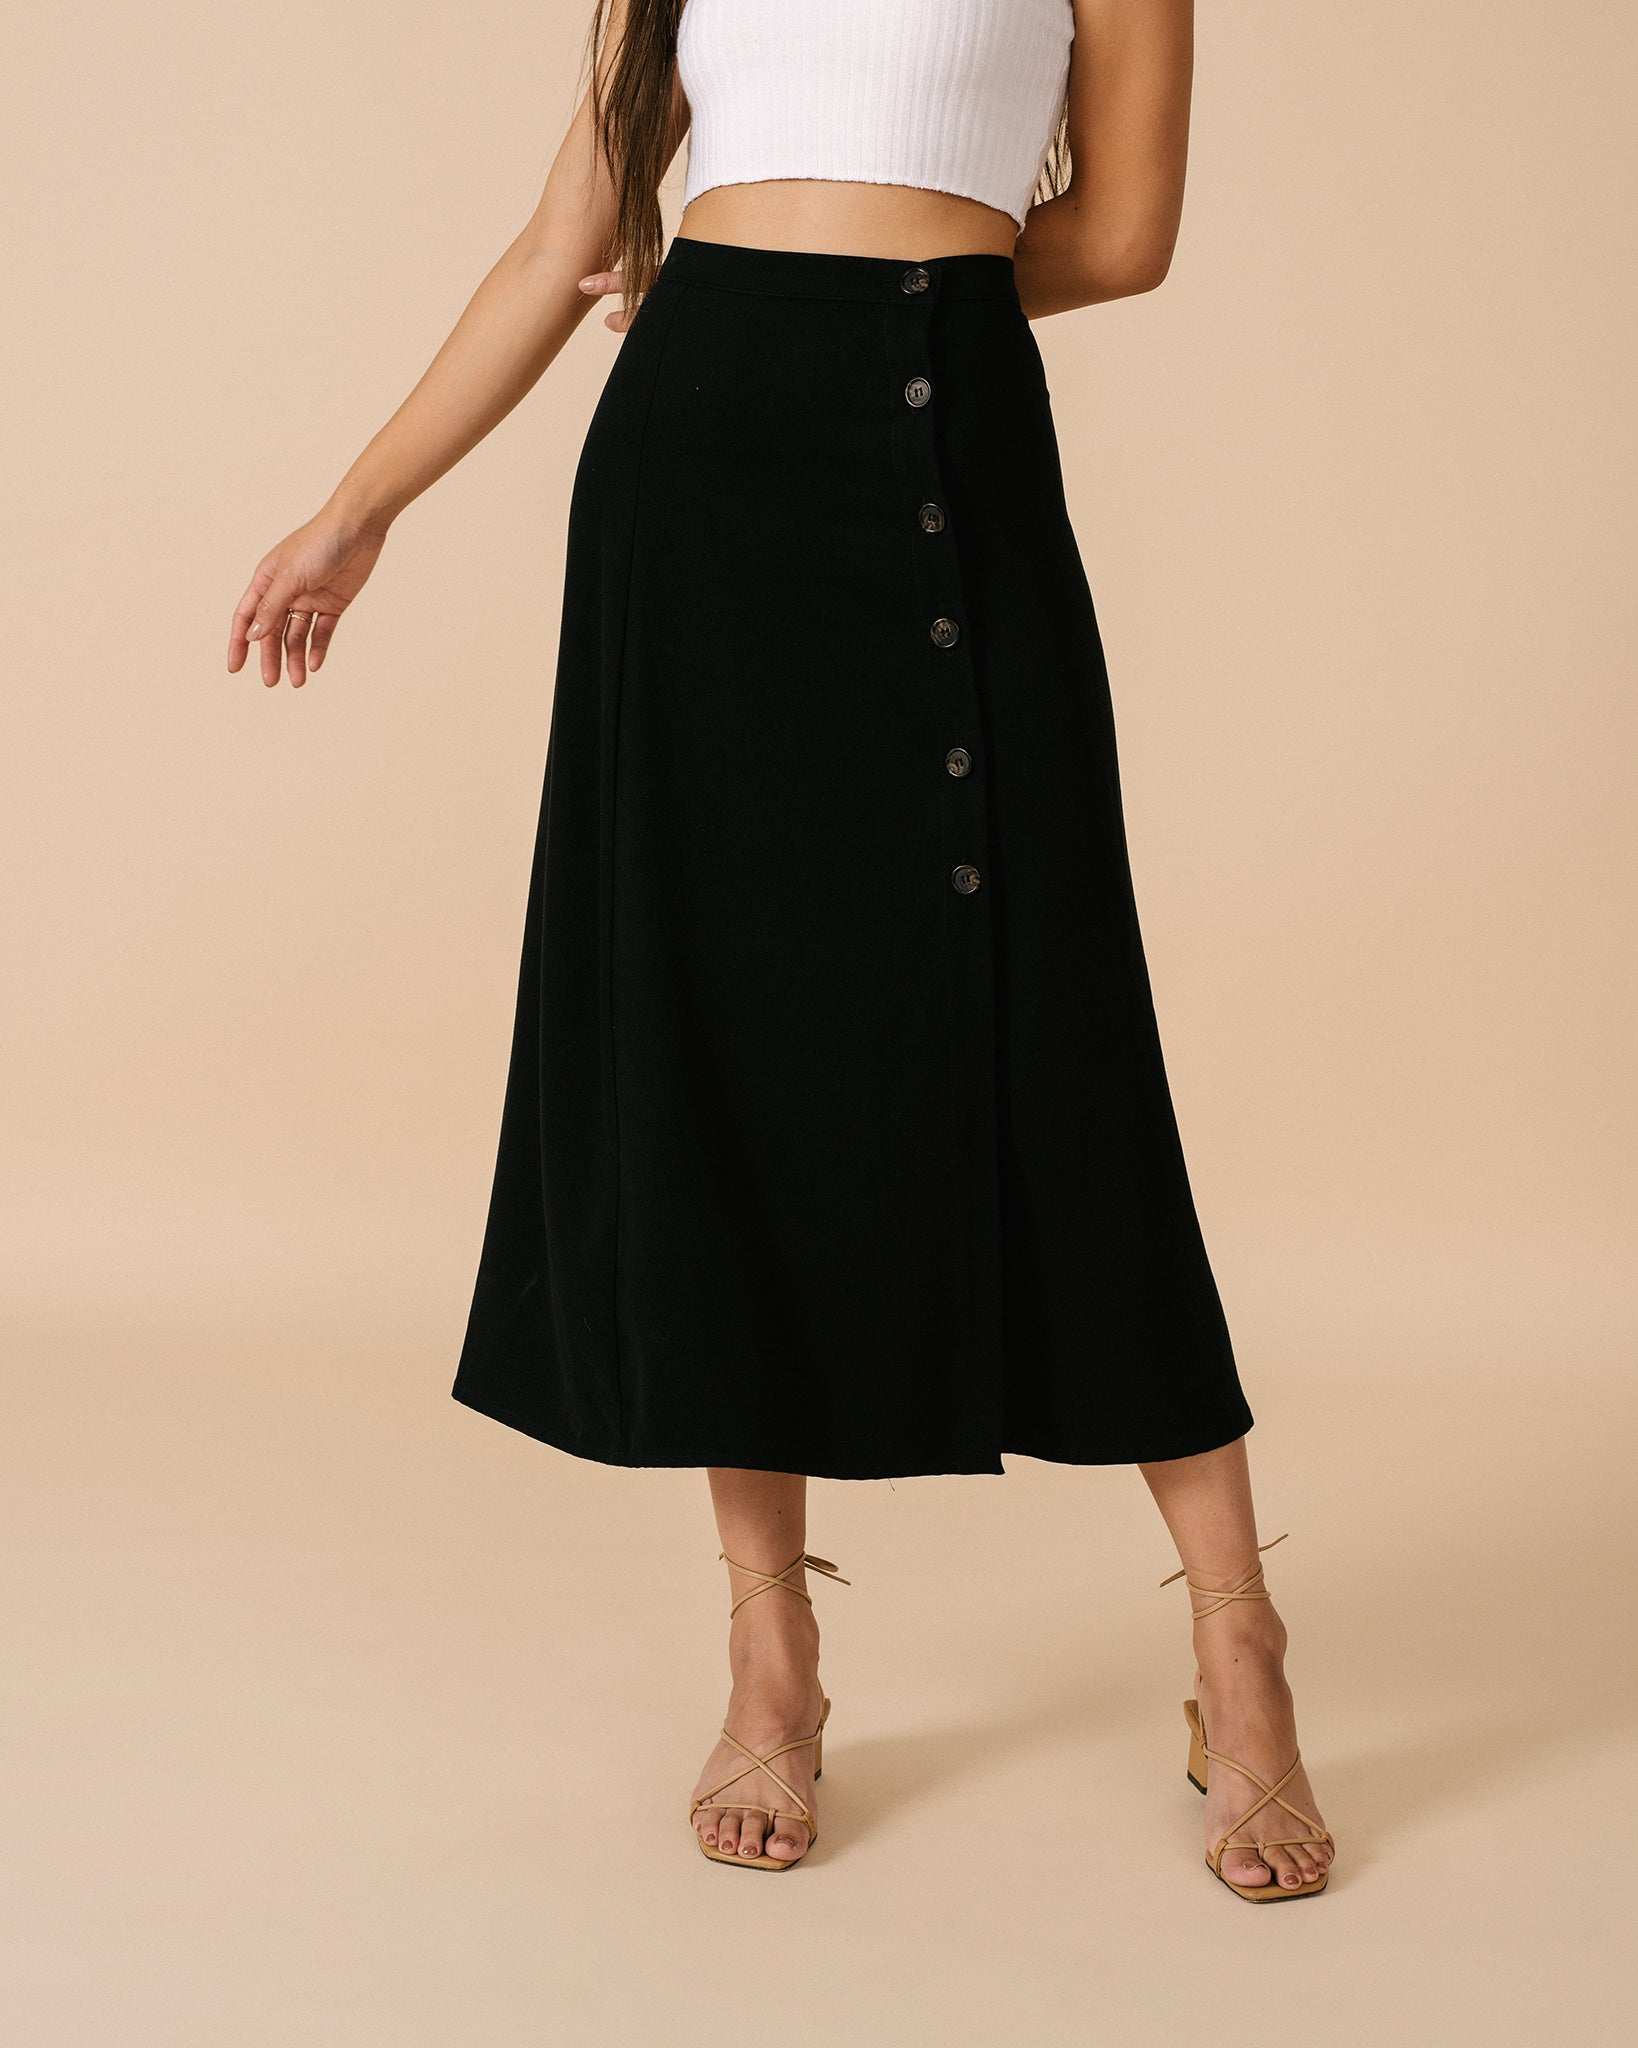 The Nora Skirt - 50% Off